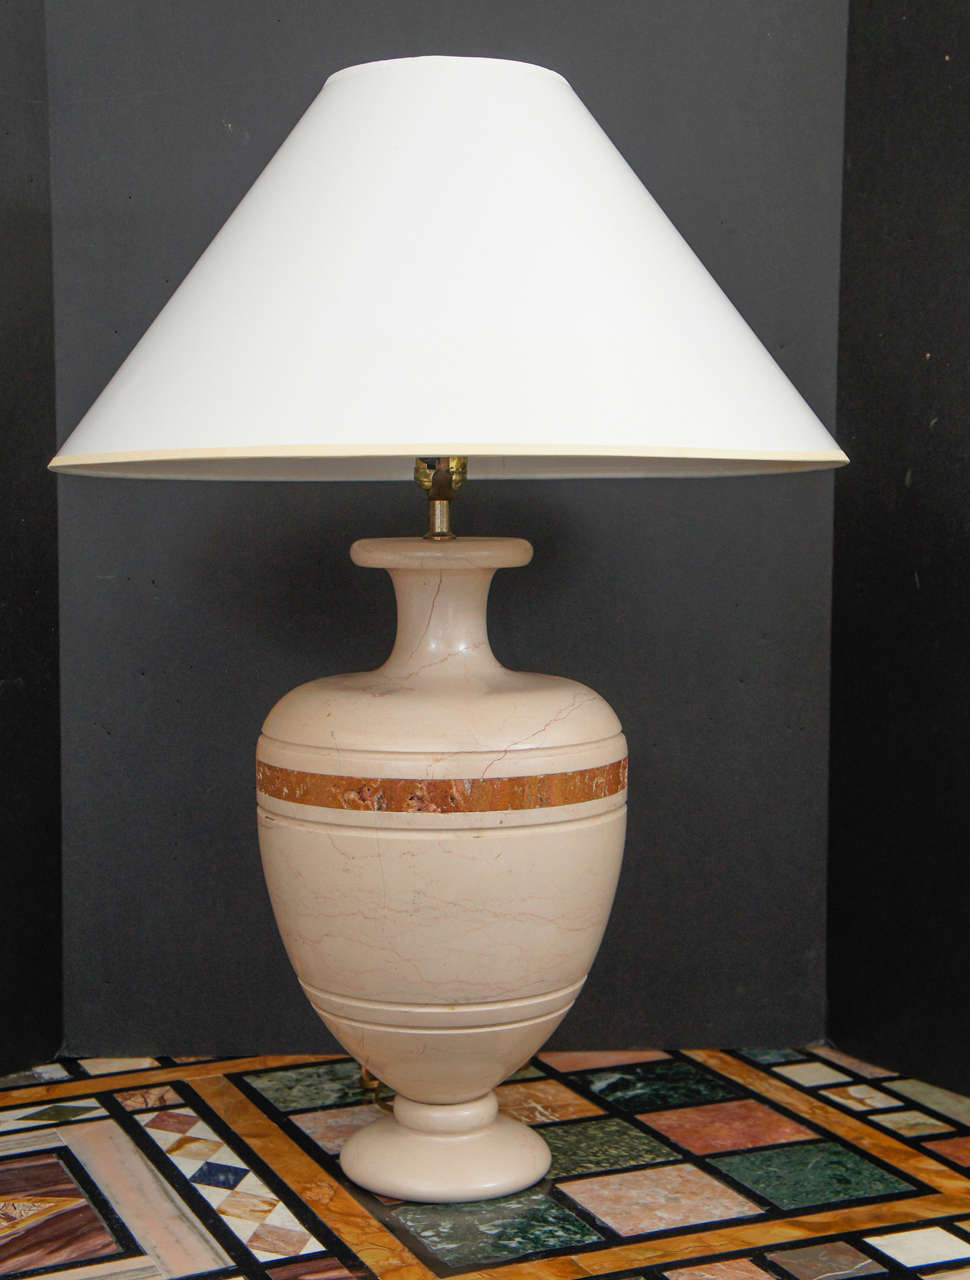 This pair of vintage 1970s Italian table lamps are made from carved travertine that has been inlaid with a rouge marble band. Carved from a solid block the lamps are very substantial and heavy. Travertine a stone favored by the Romans and here used